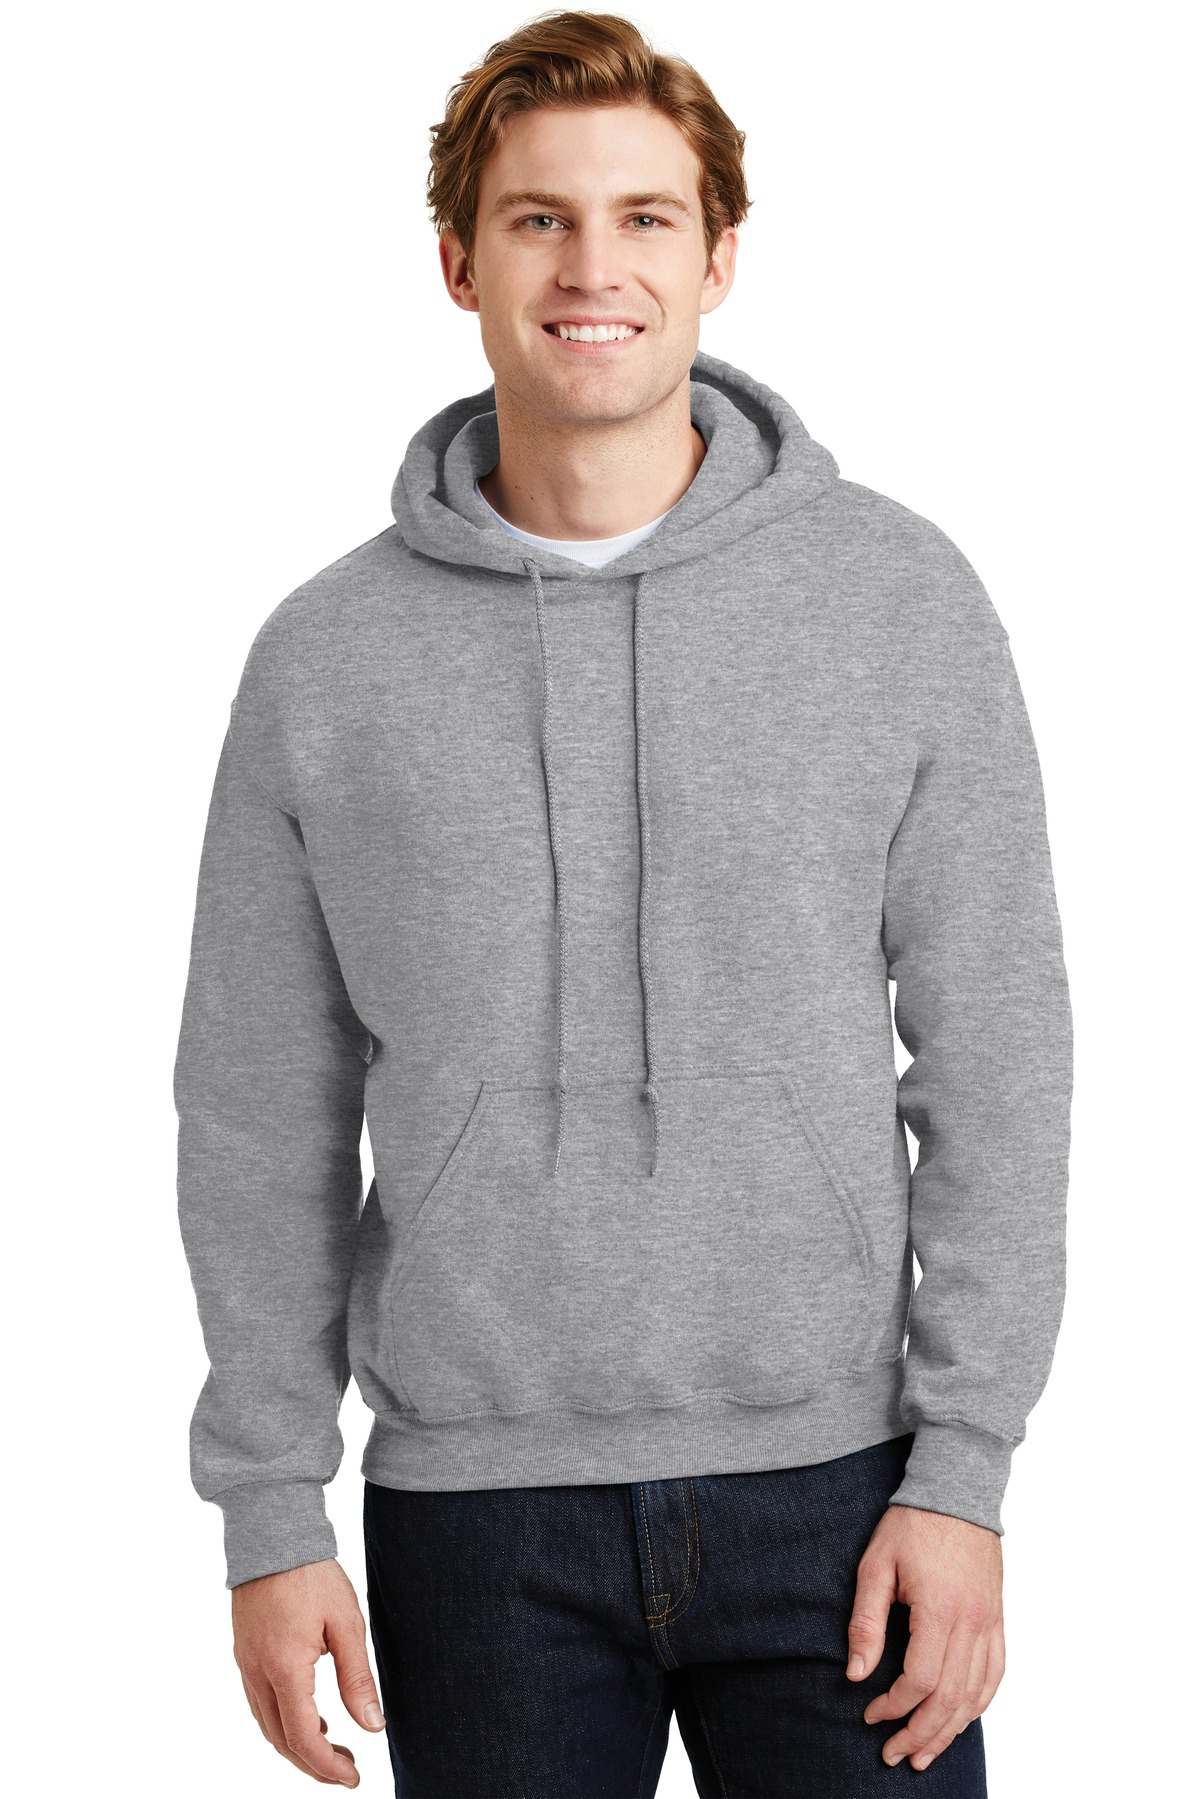 Gildan ®  - Heavy Blend ™  Hooded Sweatshirt.  18500 - Sport Grey